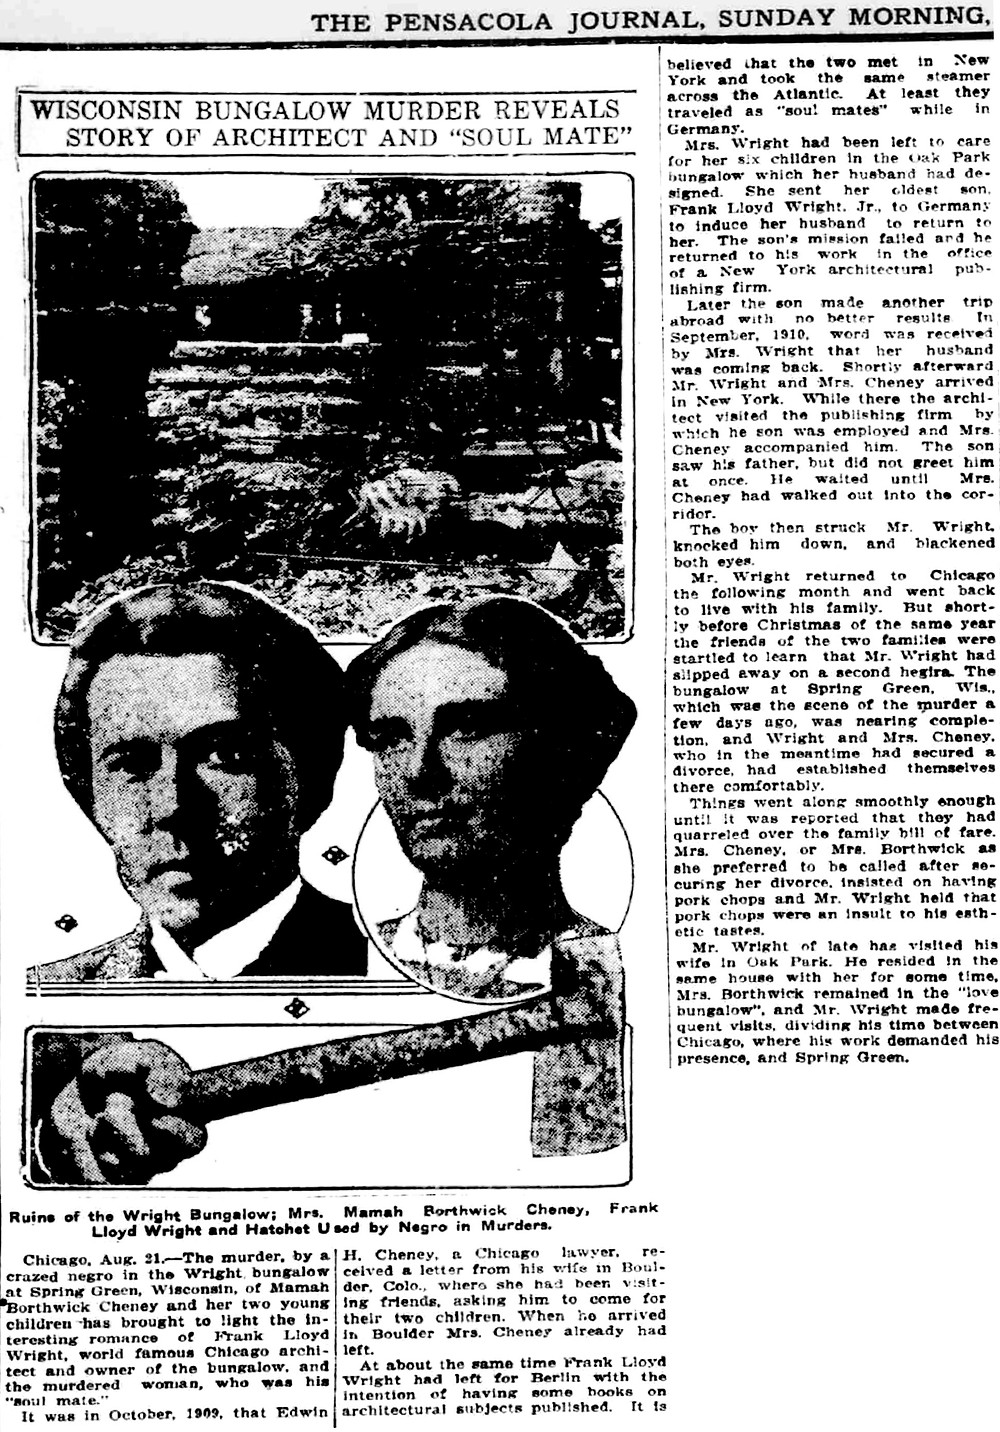 The Pensacola Journal (August 21, 1914)